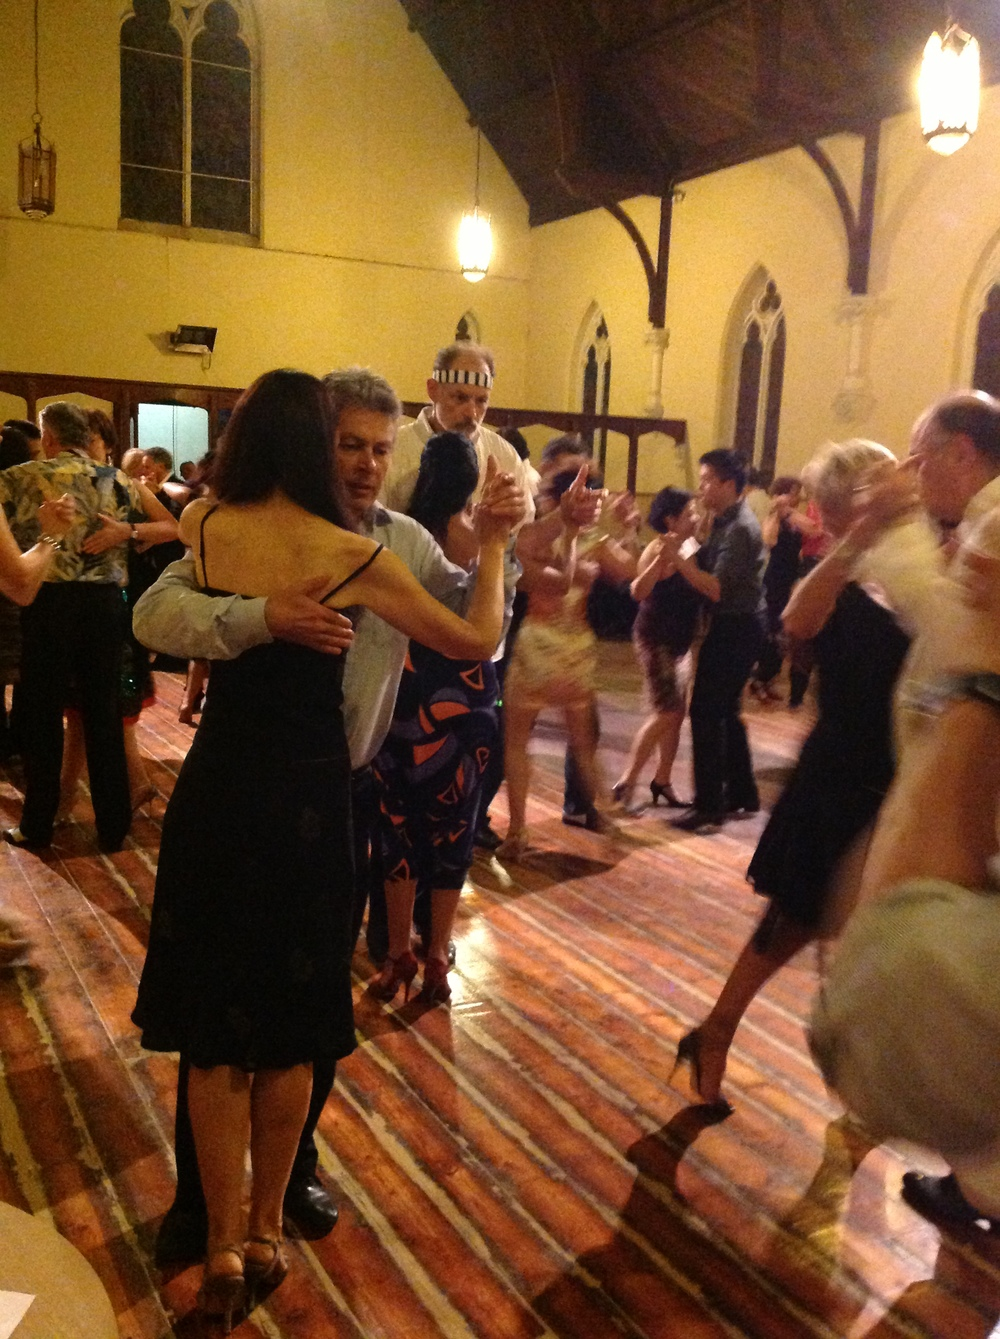 One of the Milonga nights at February Festivalito 2013.jpg